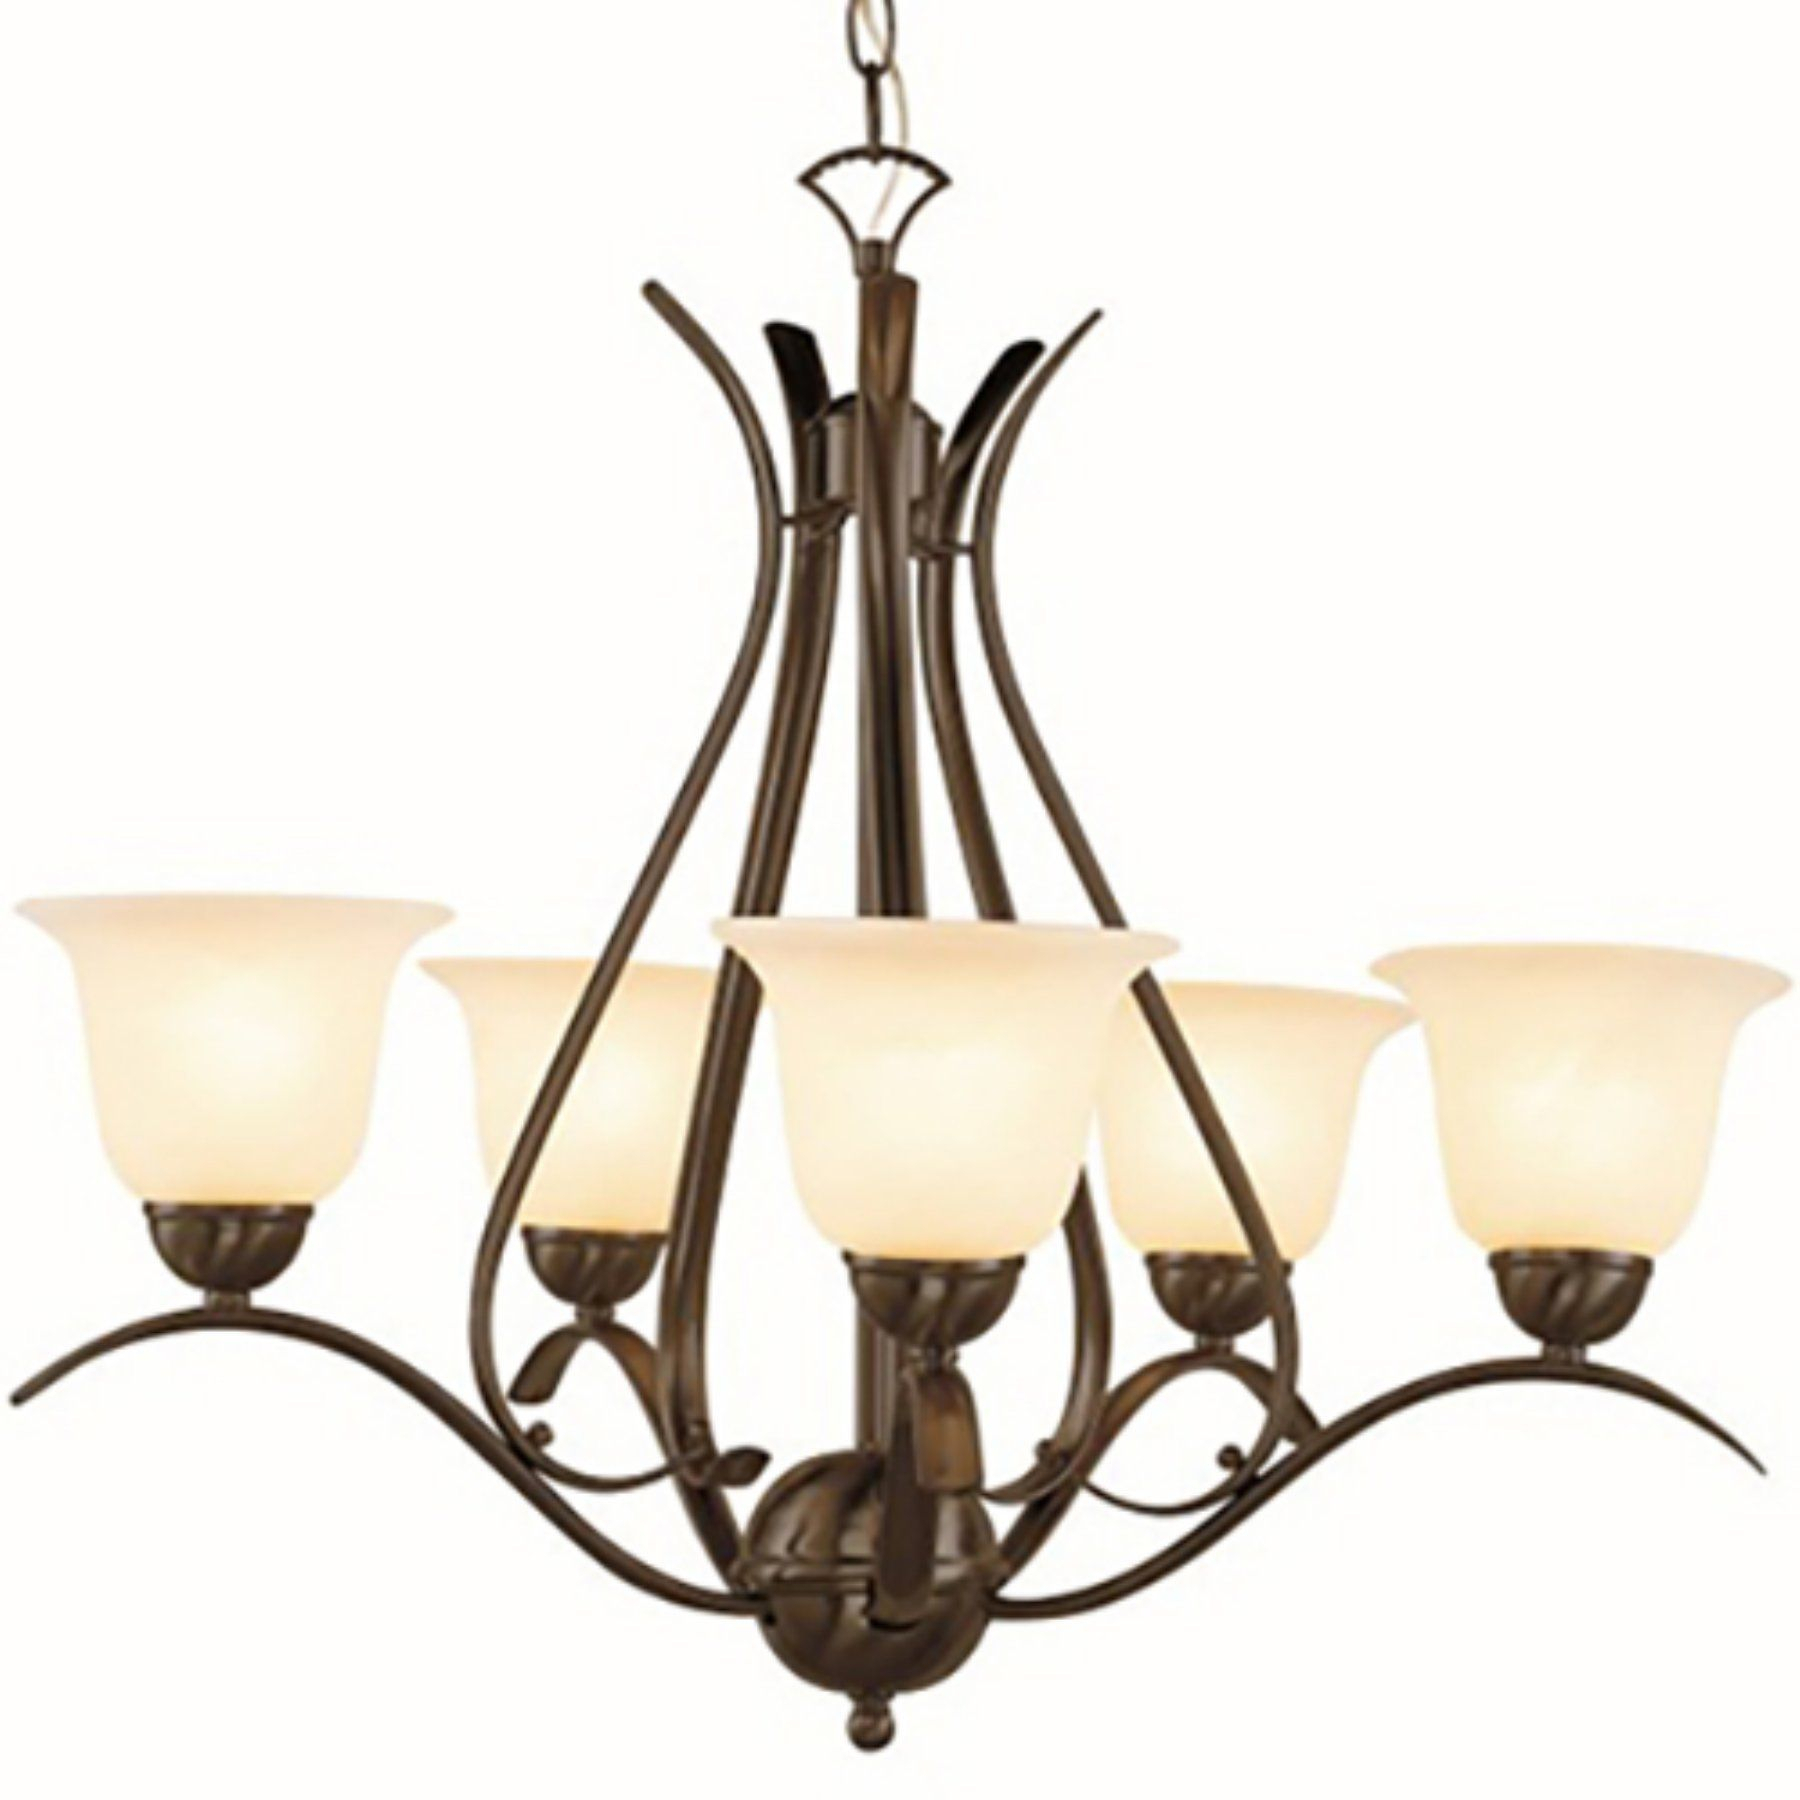 Trans Globe Lighting Aspen Pl 9285 Chandelier – Pl 9285 Rob With Regard To Hayden 5 Light Shaded Chandeliers (View 20 of 30)